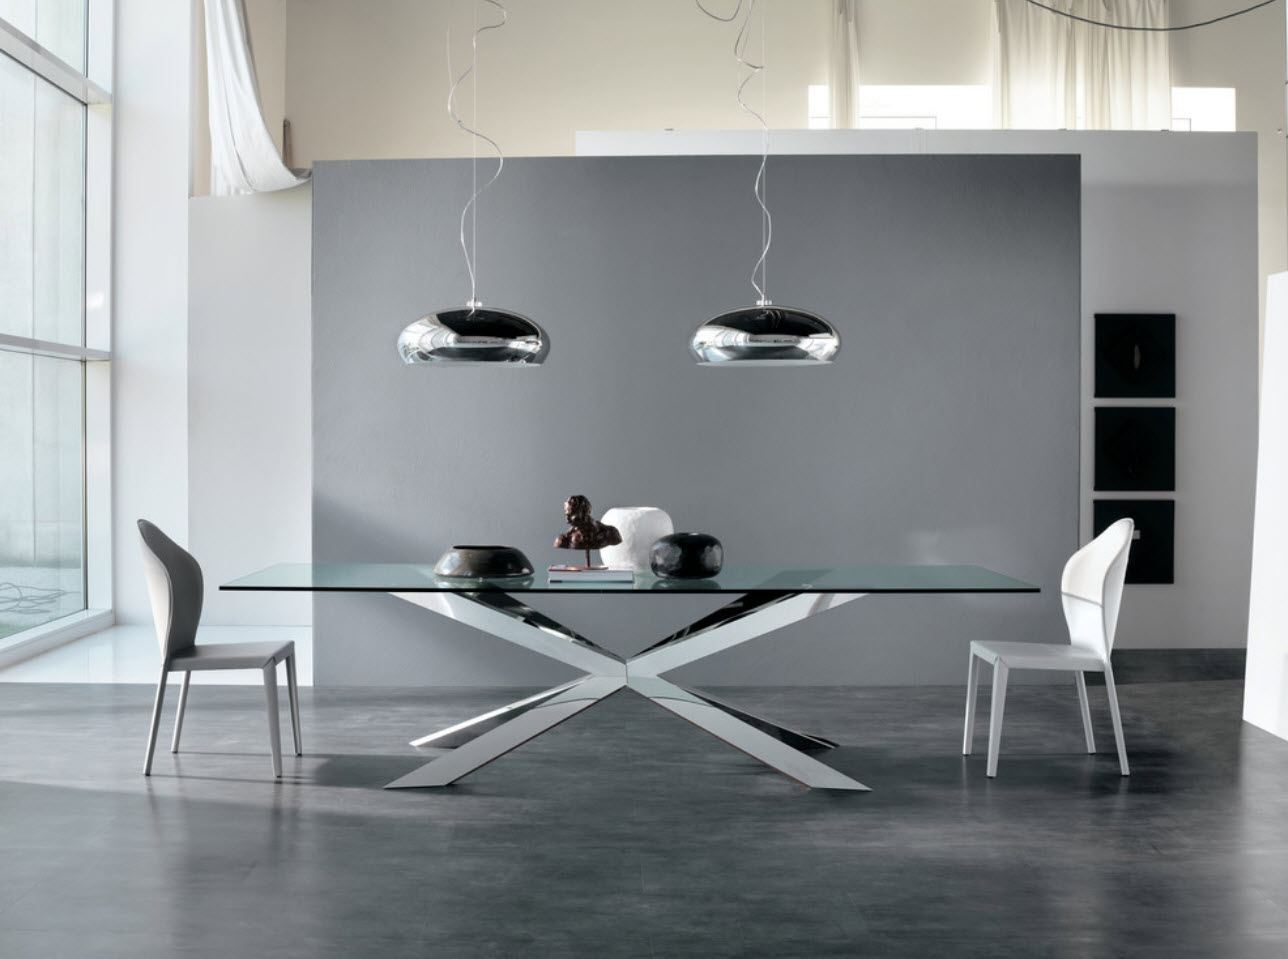 Gray Laminate: Photo Collection of Successfully Decorated Interiors. Unusual modern interior with glass table top and gray screen at the background